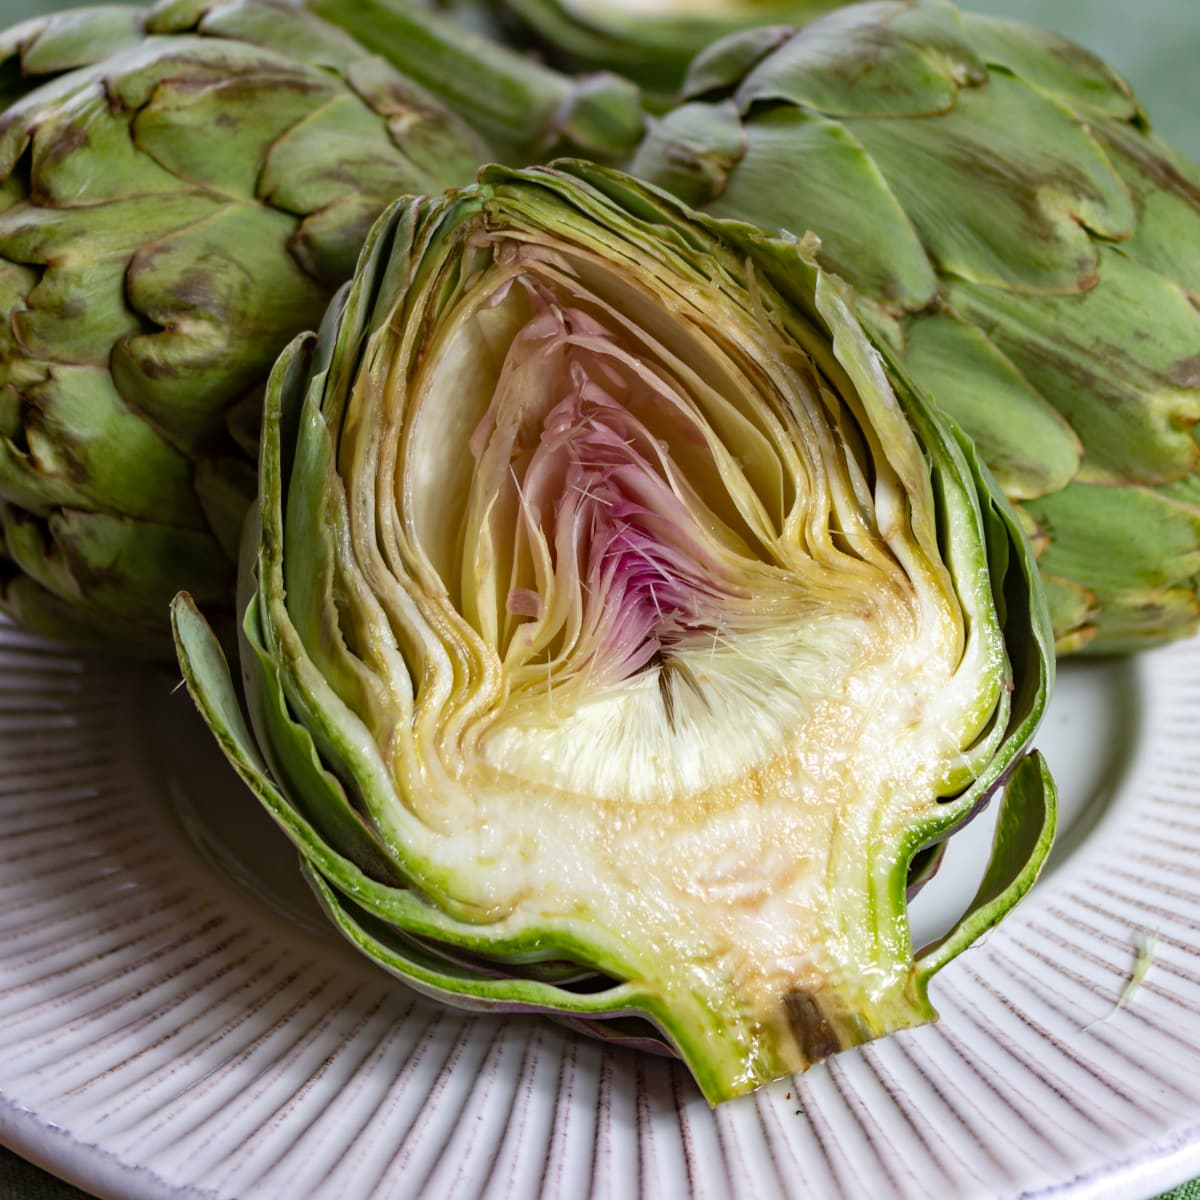 Artichoke Cross Section Showing Bracts, Choke and Heart on a plate with 2 whole artichokes